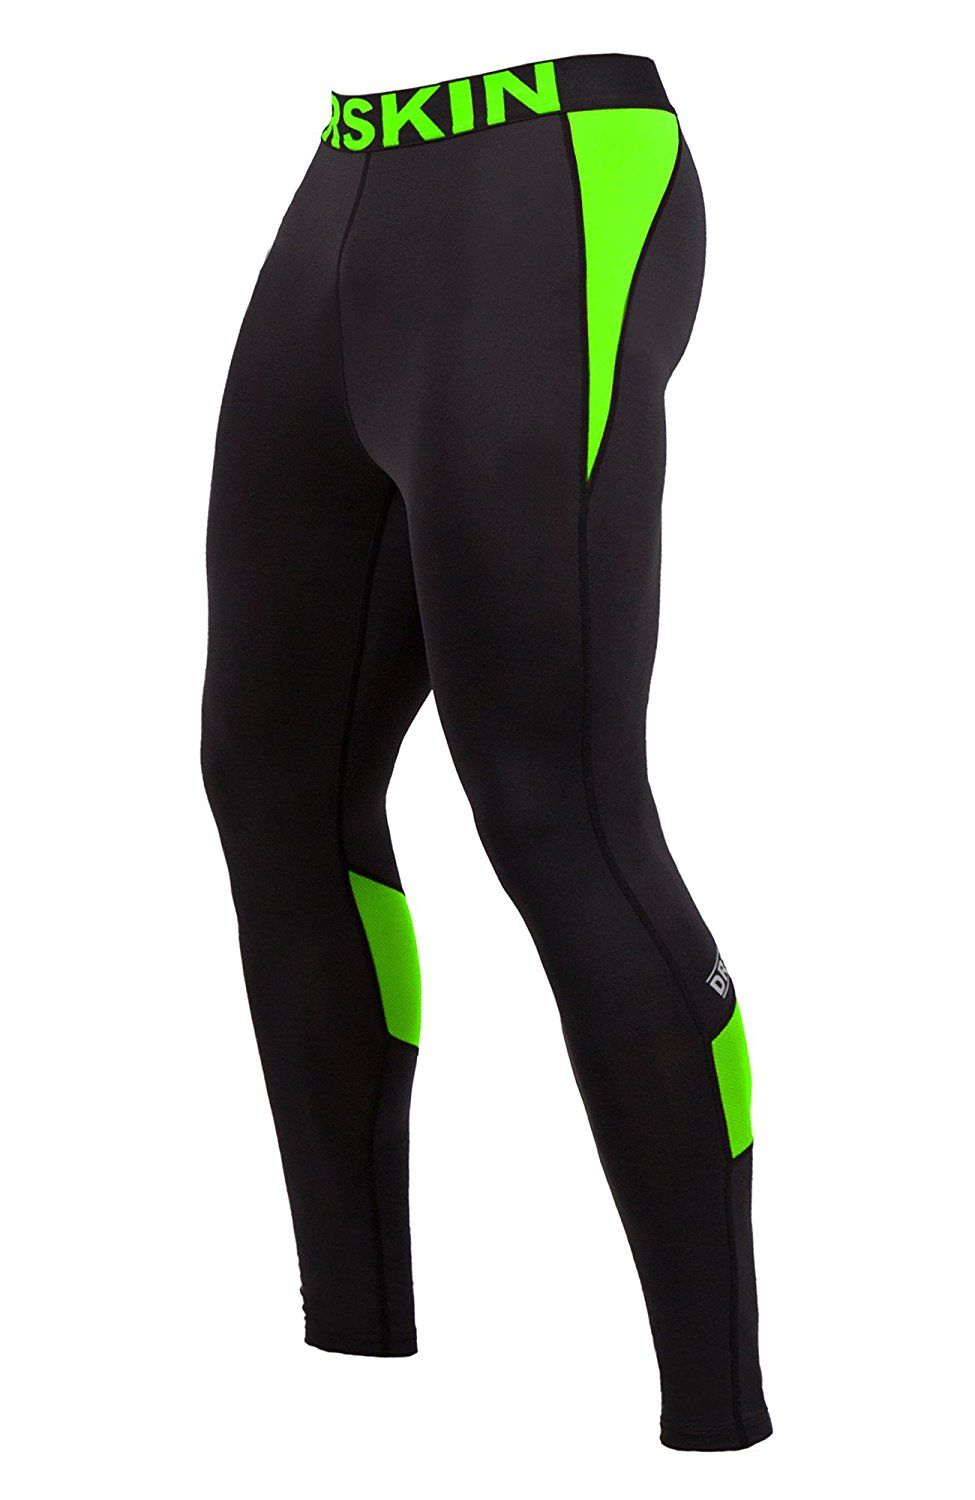 5744500f4fe4a1 Amazon.com: DRSKIN Compression Cool Dry Sports Tights Pants Baselayer  Running Leggings Yoga Rashguard Men Women: Clothing